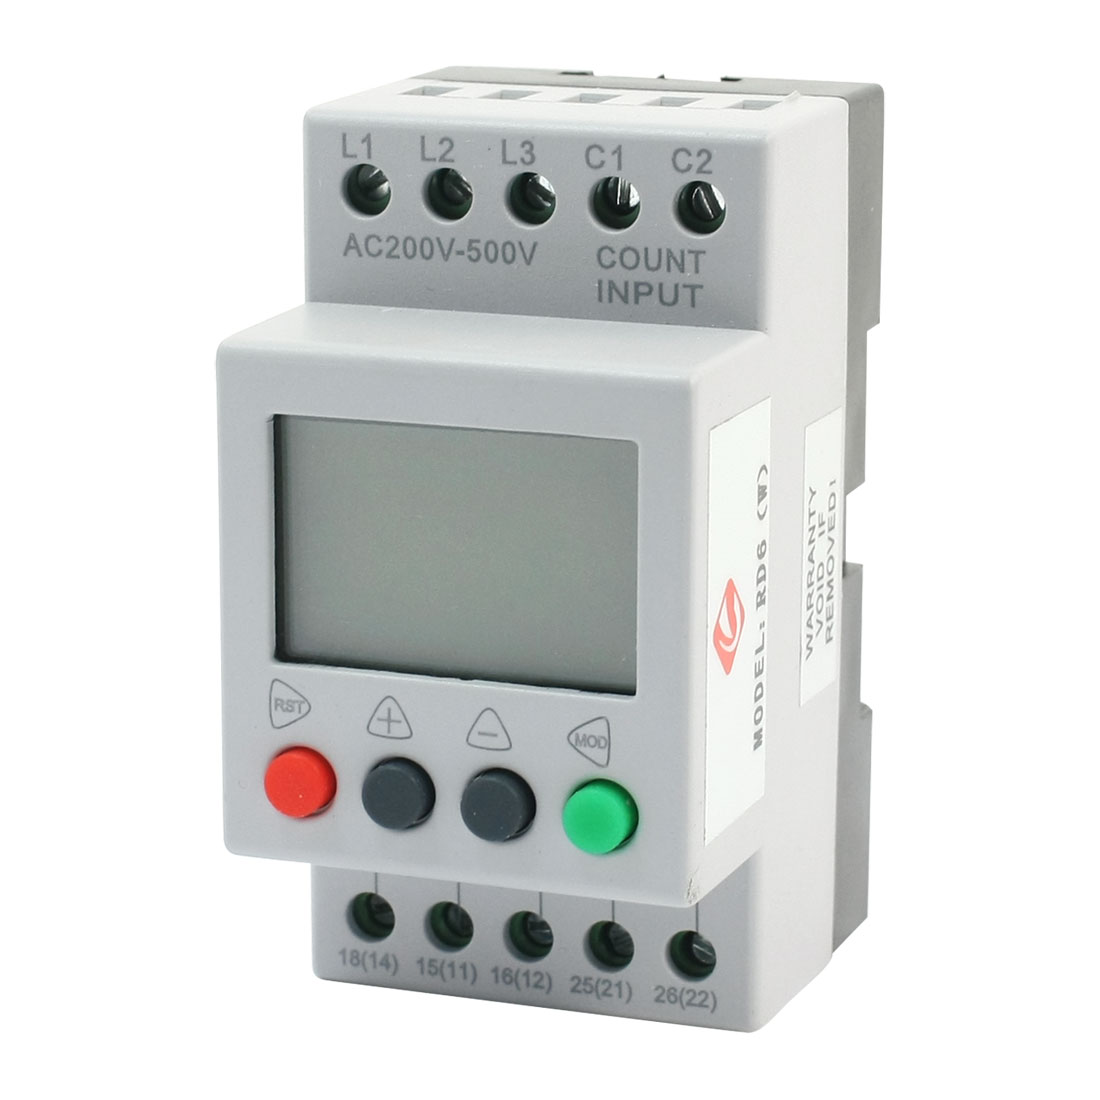 RD6 Three-phase LCD Display Phase Failure Sequence Unbalance Over/Under Voltage Protective Relay